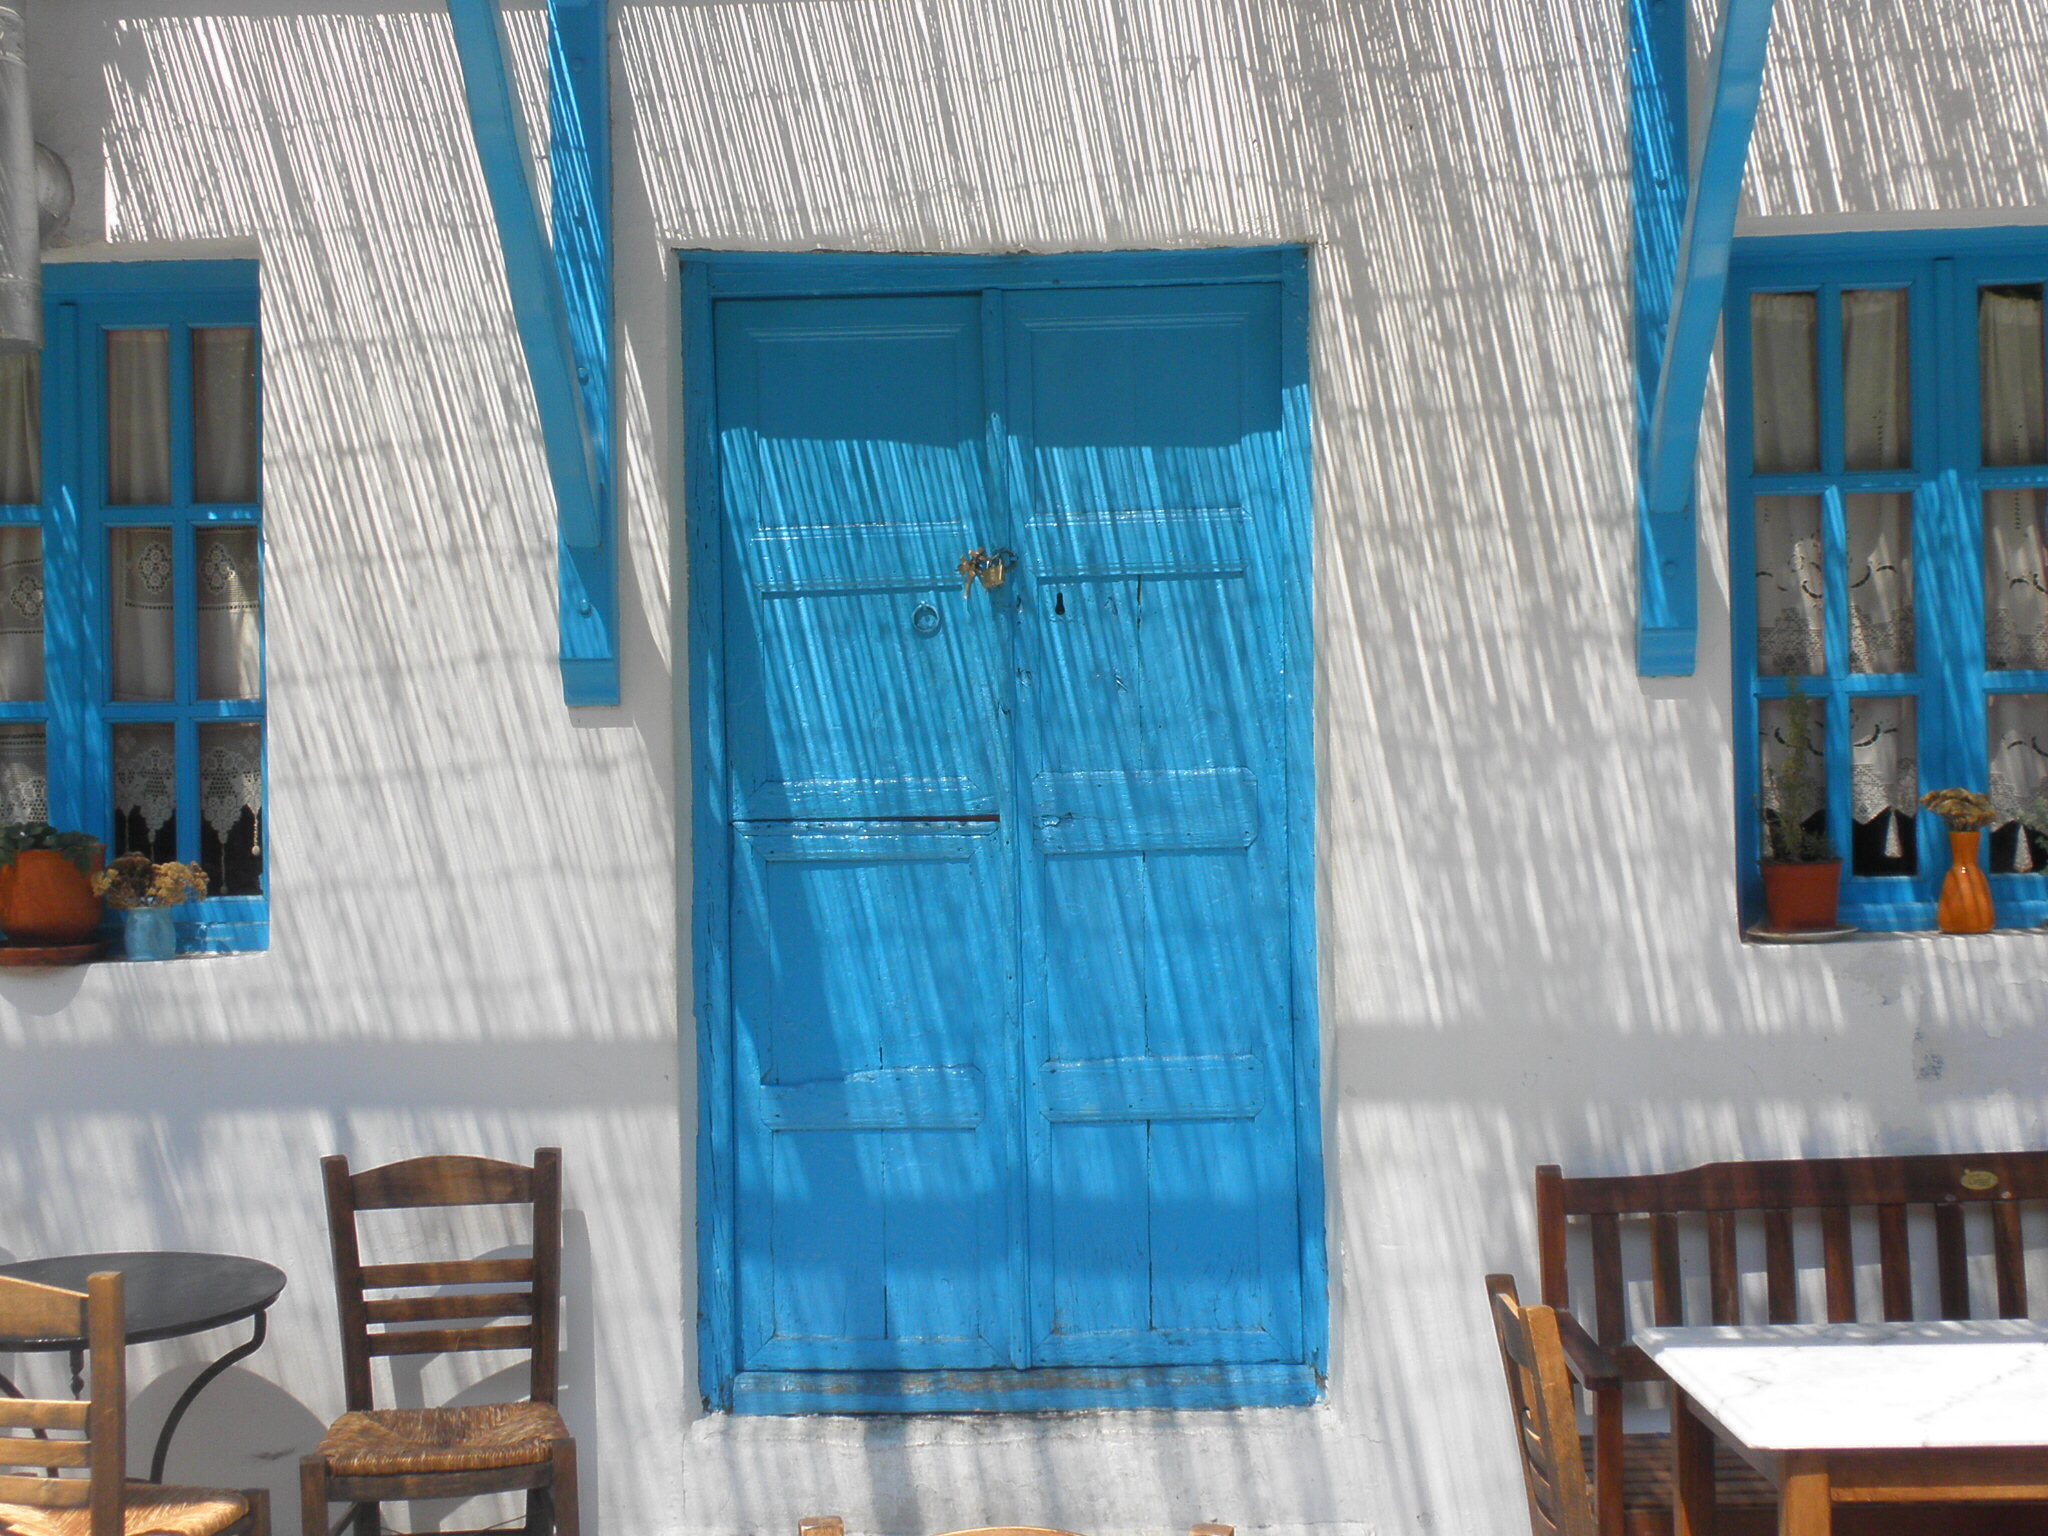 Blue is used everywhere in the Cyclades church cupolas windows doors walls staircases and fences which provide blue \u0027belts\u0027 around buildings ... & Blue Doors and Windows | Another Bag More Travel